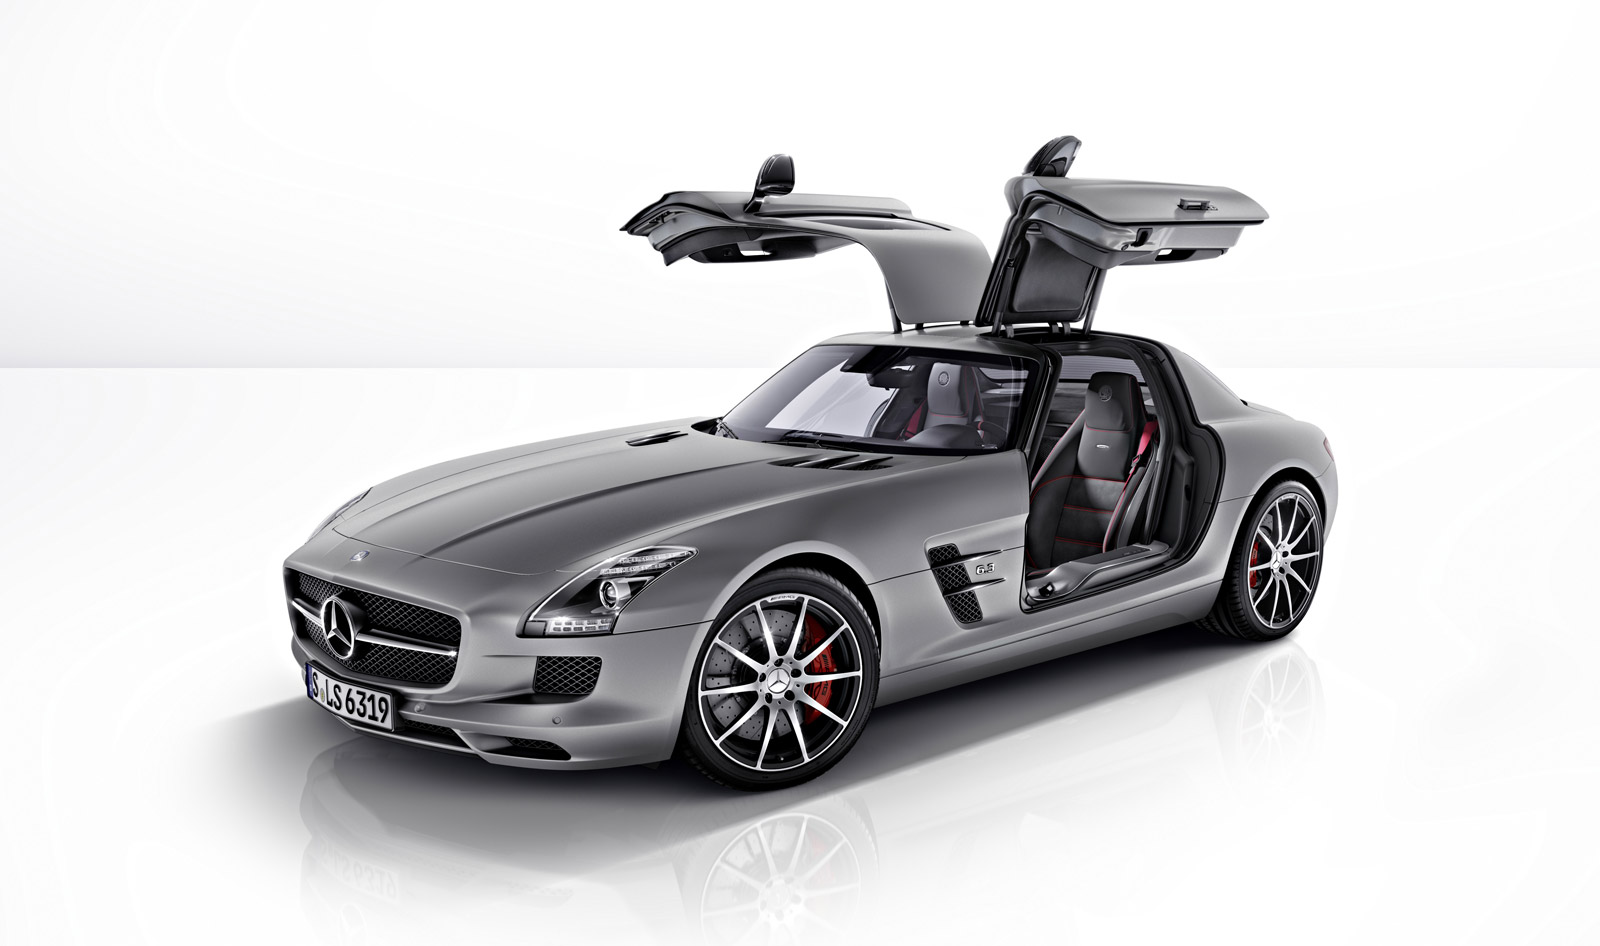 2013 mercedes benz sls amg gt review ratings specs for Mercedes benz sls price